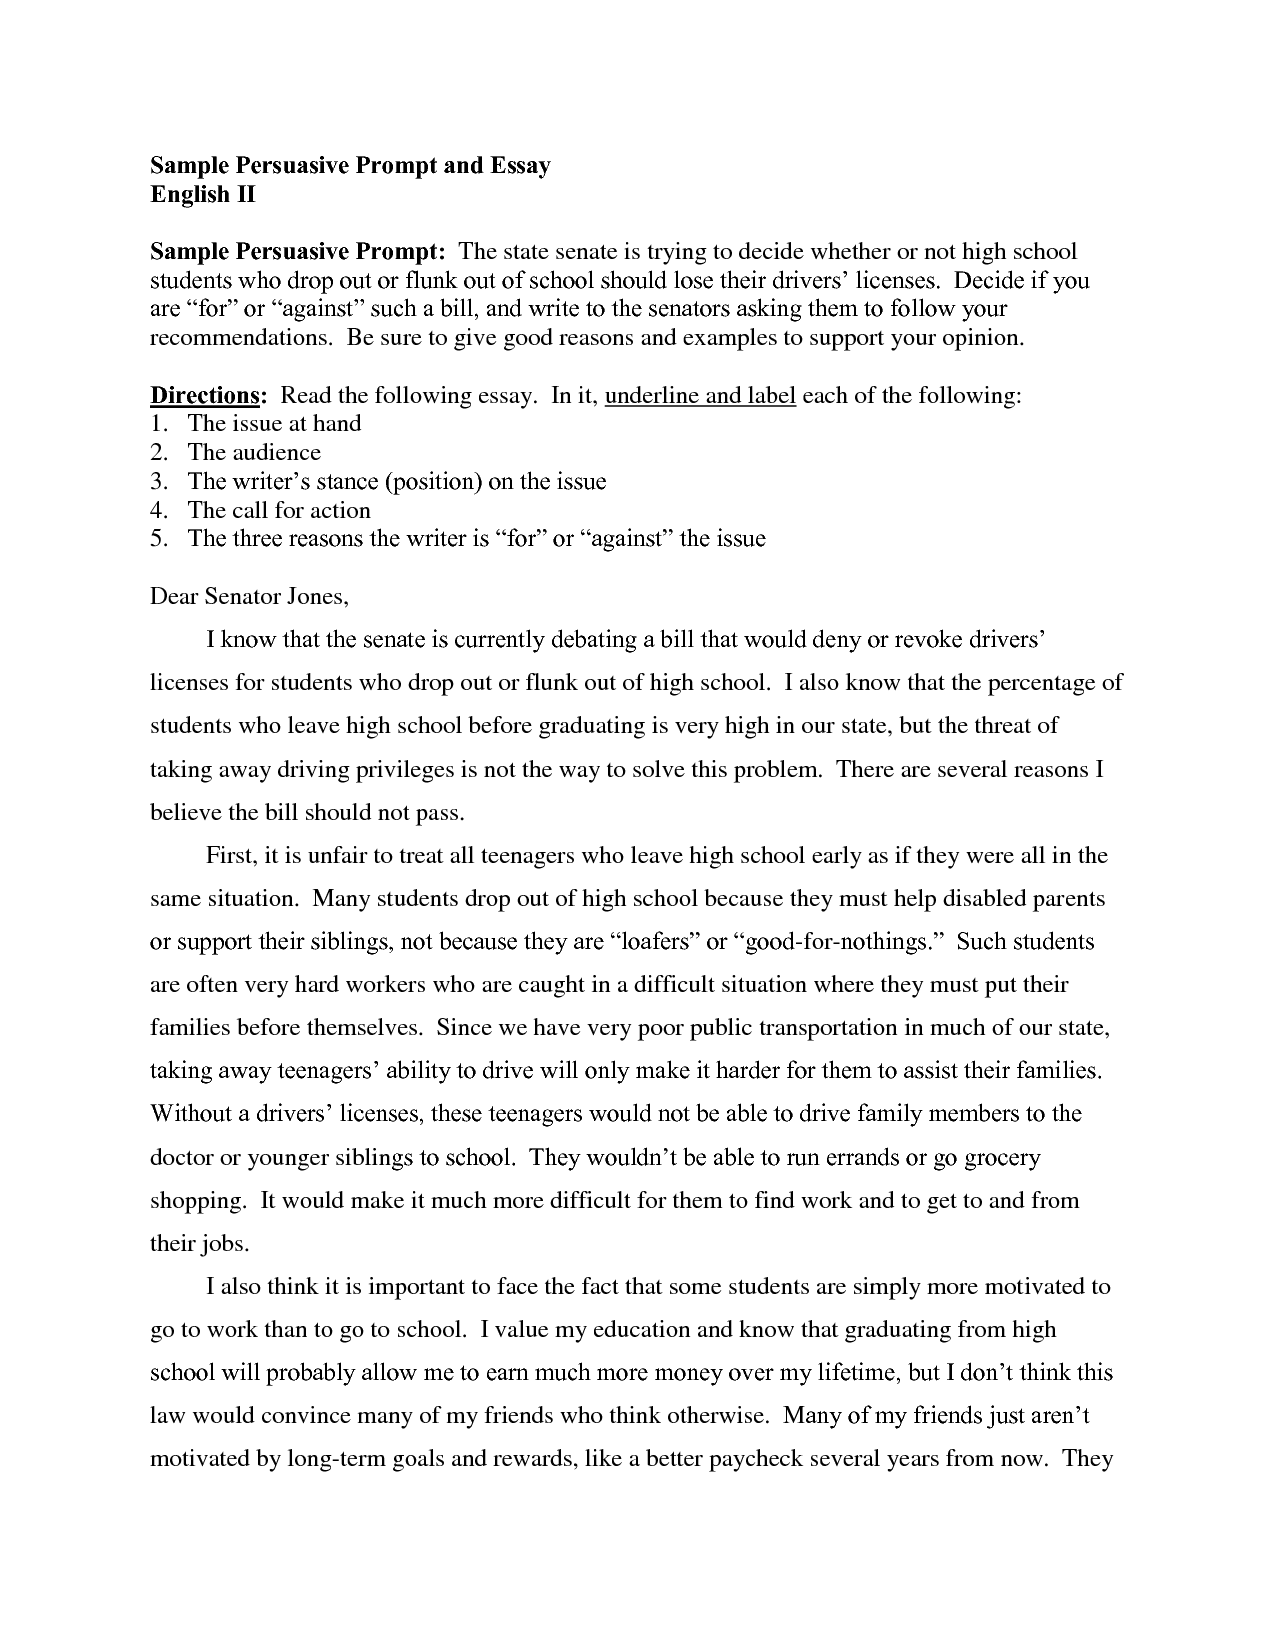 013 Research Paper Easy Topic Persuasive Essay Topics For High School Sample Ideas Highschool Students Good Prompt Funny Fun List Of Seniors Writing English Sensational Psychology To Write About Biology Full